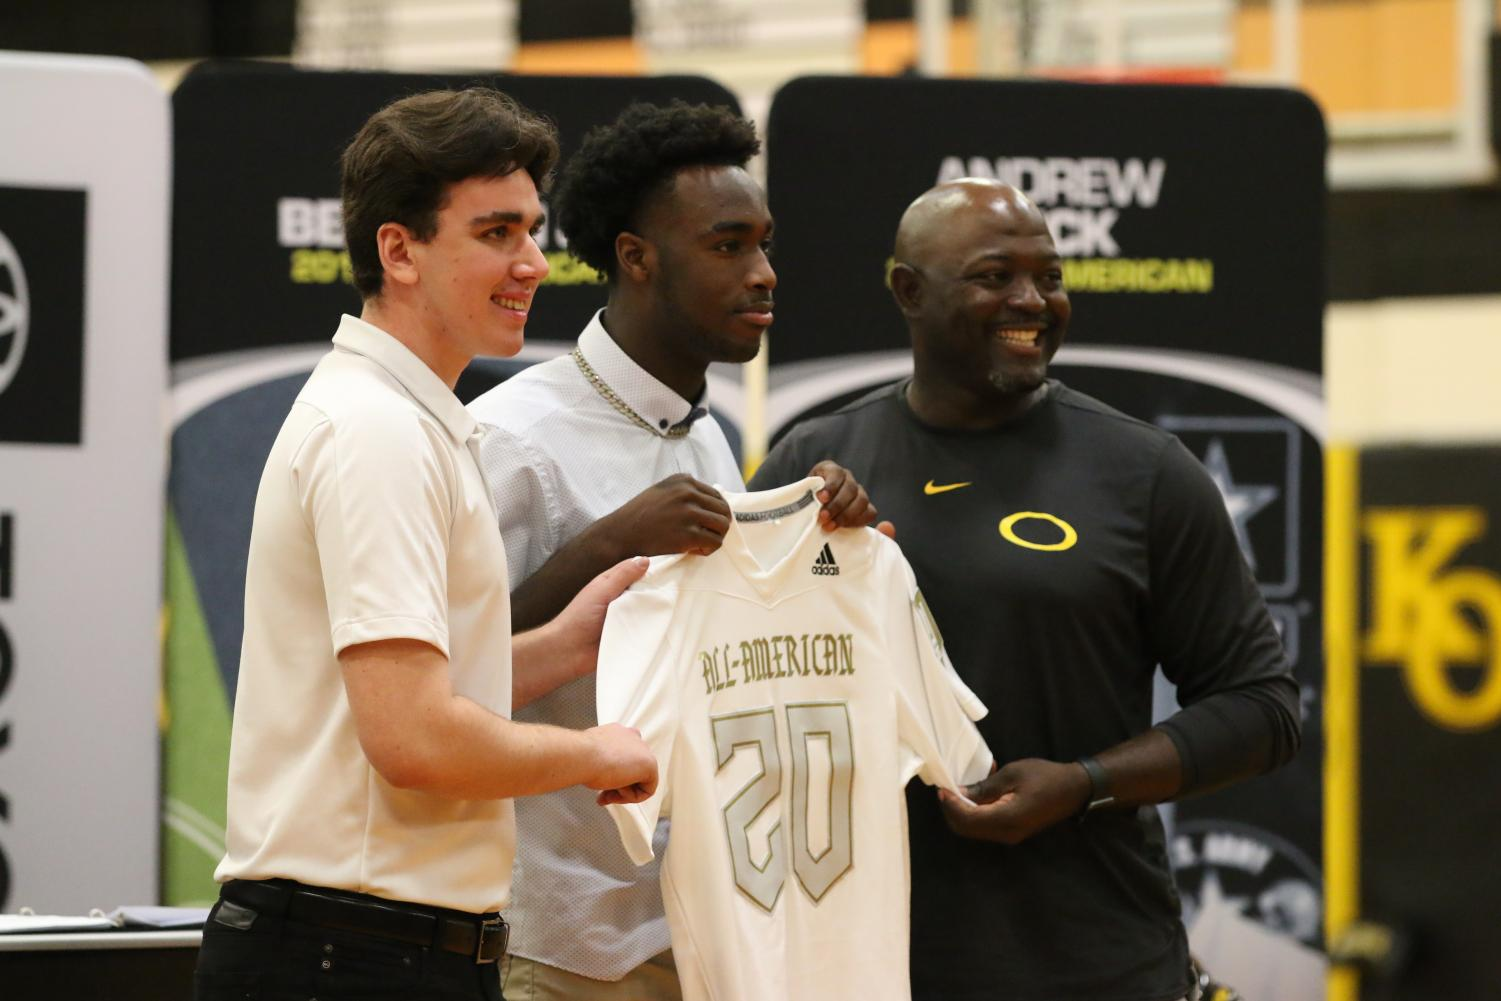 Along with the bowl game representative, senior Dwight McGlothern and Athletic Director and Head Coach Jason Glenn present #20 his jersey for the U.S. Army All-American Bowl game. McGlothern was greeted in pep rally fashion by other athletes to celebrate his selection.